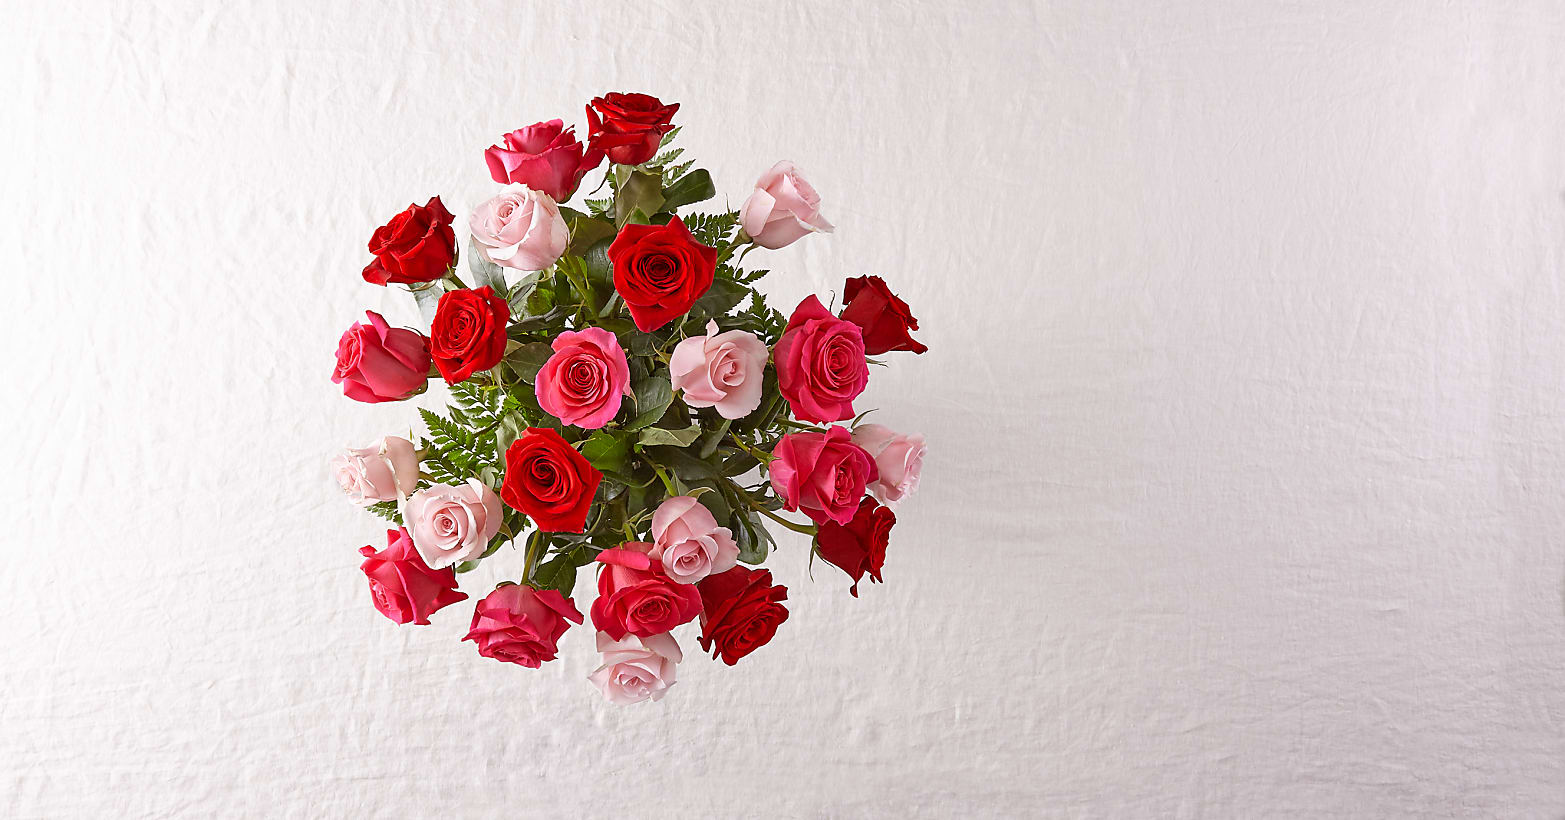 Rose Colored Love Bouquet - Image 2 Of 6